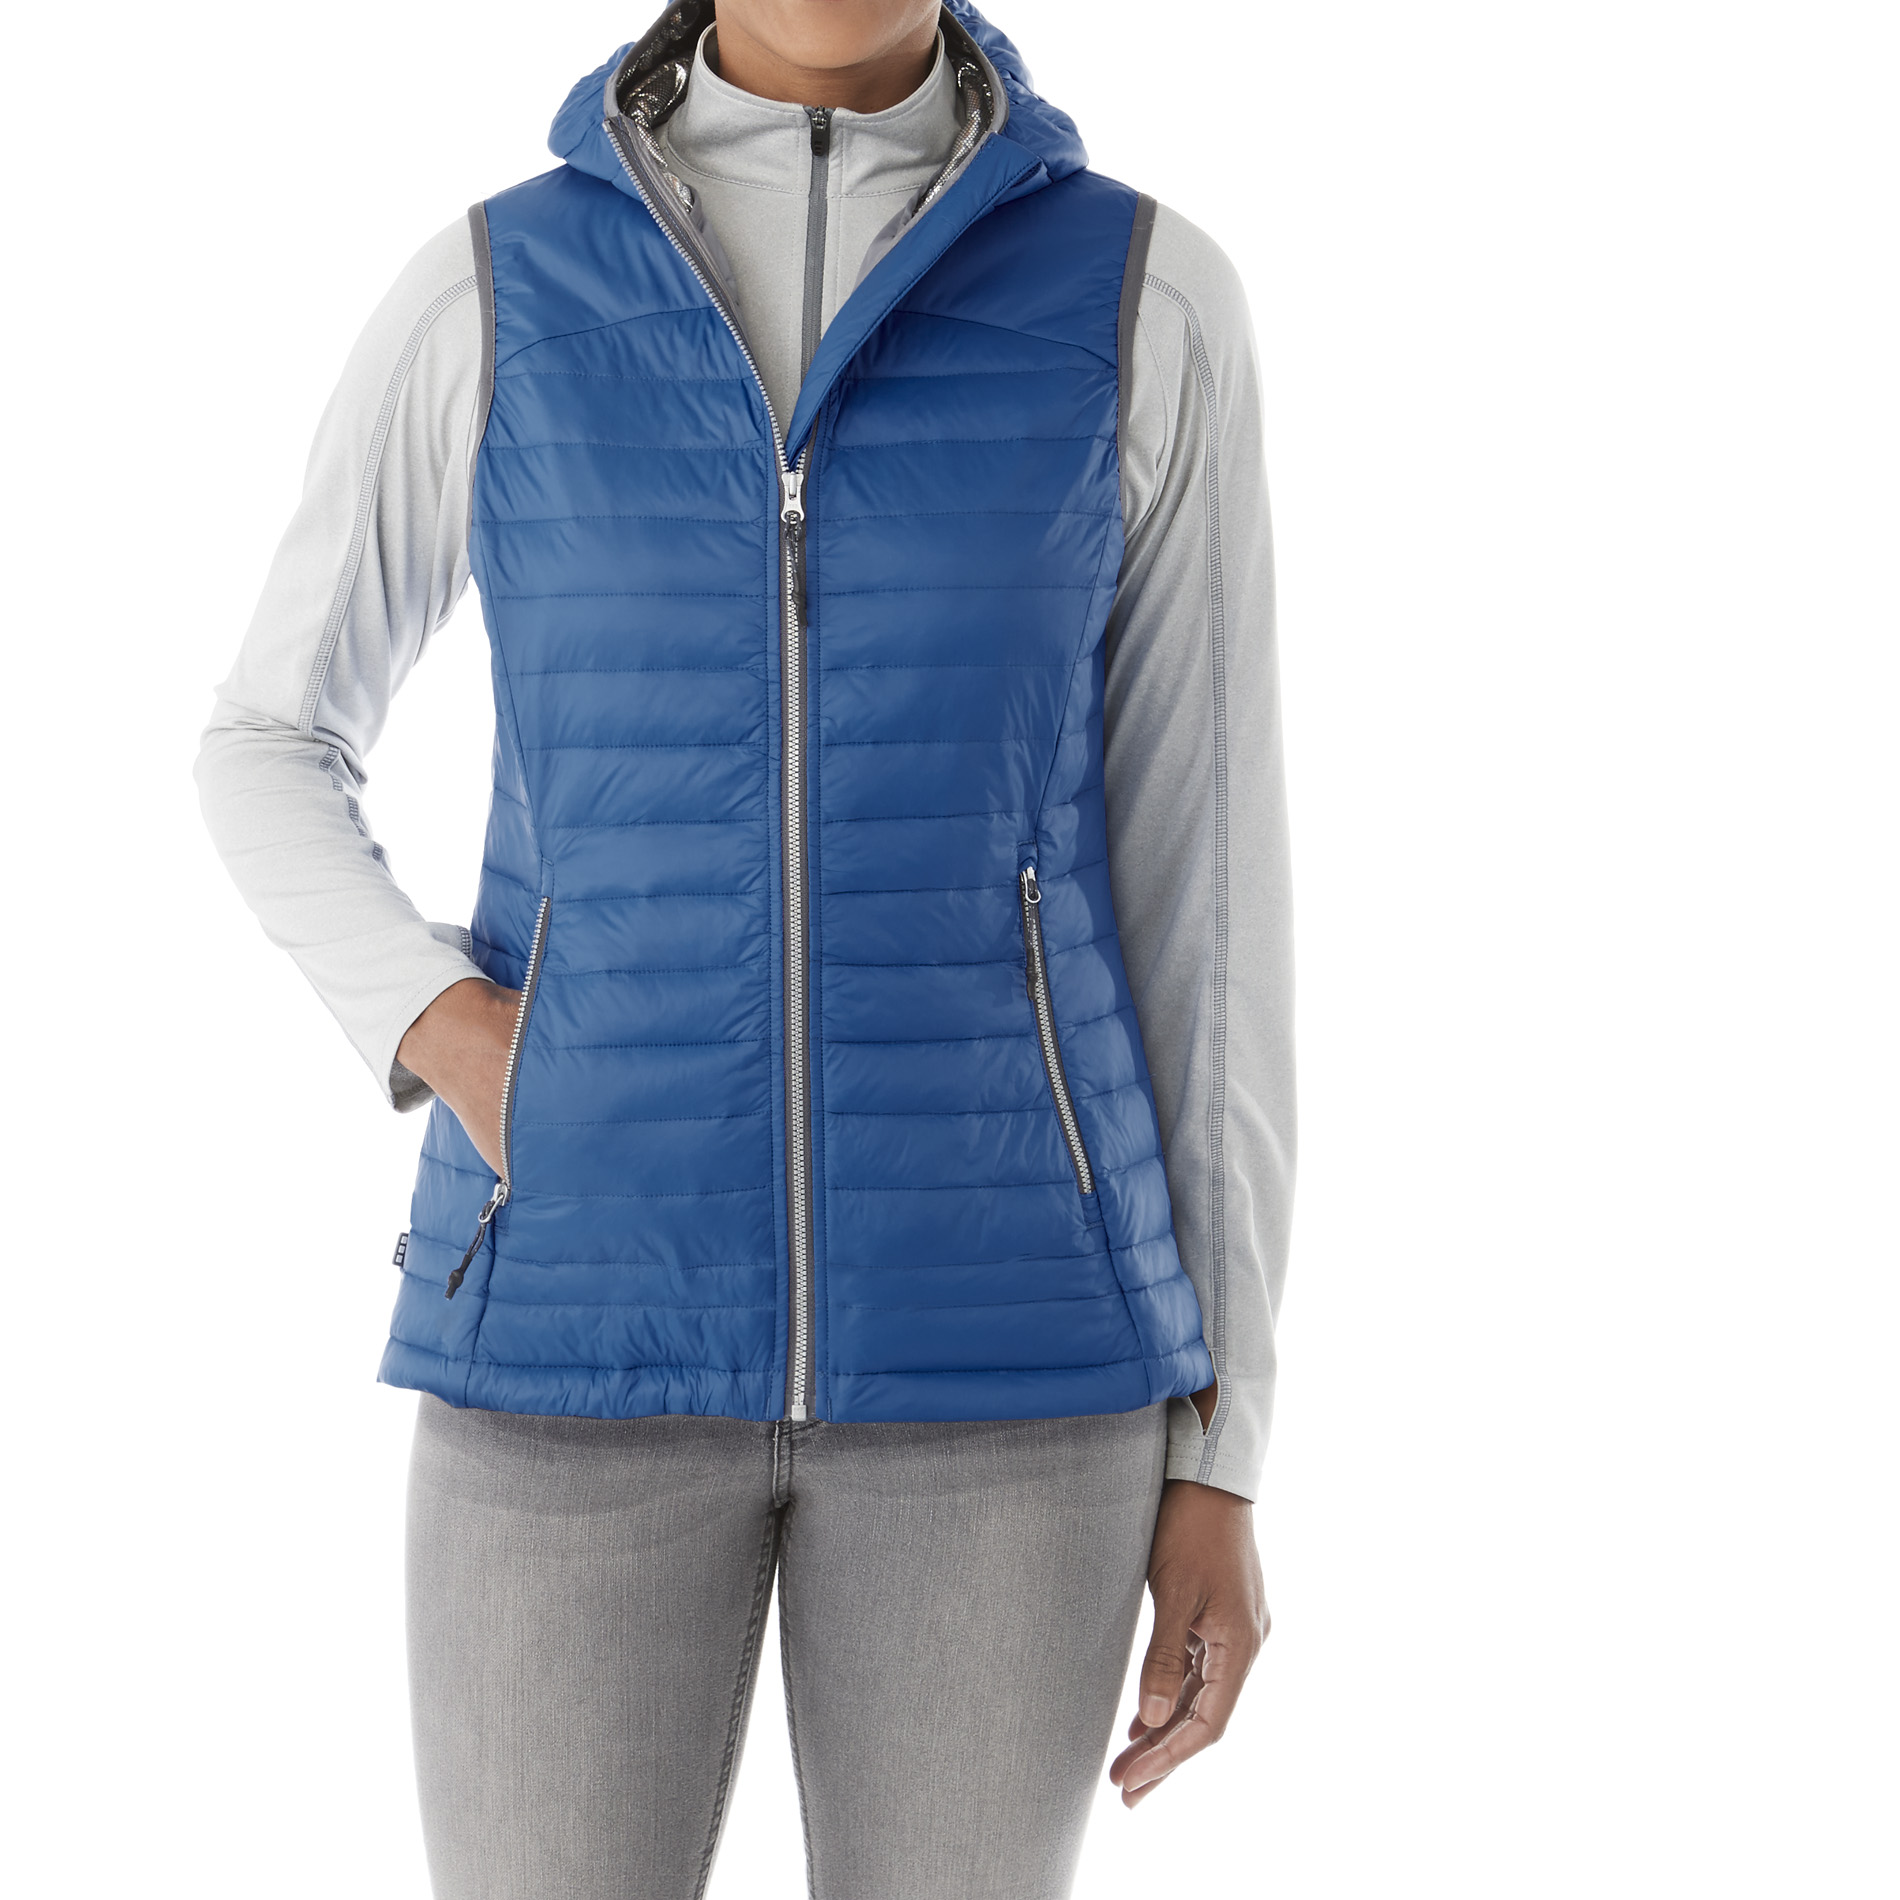 Elevate TM99556 - Women's JUNCTION Packable Insulated ...